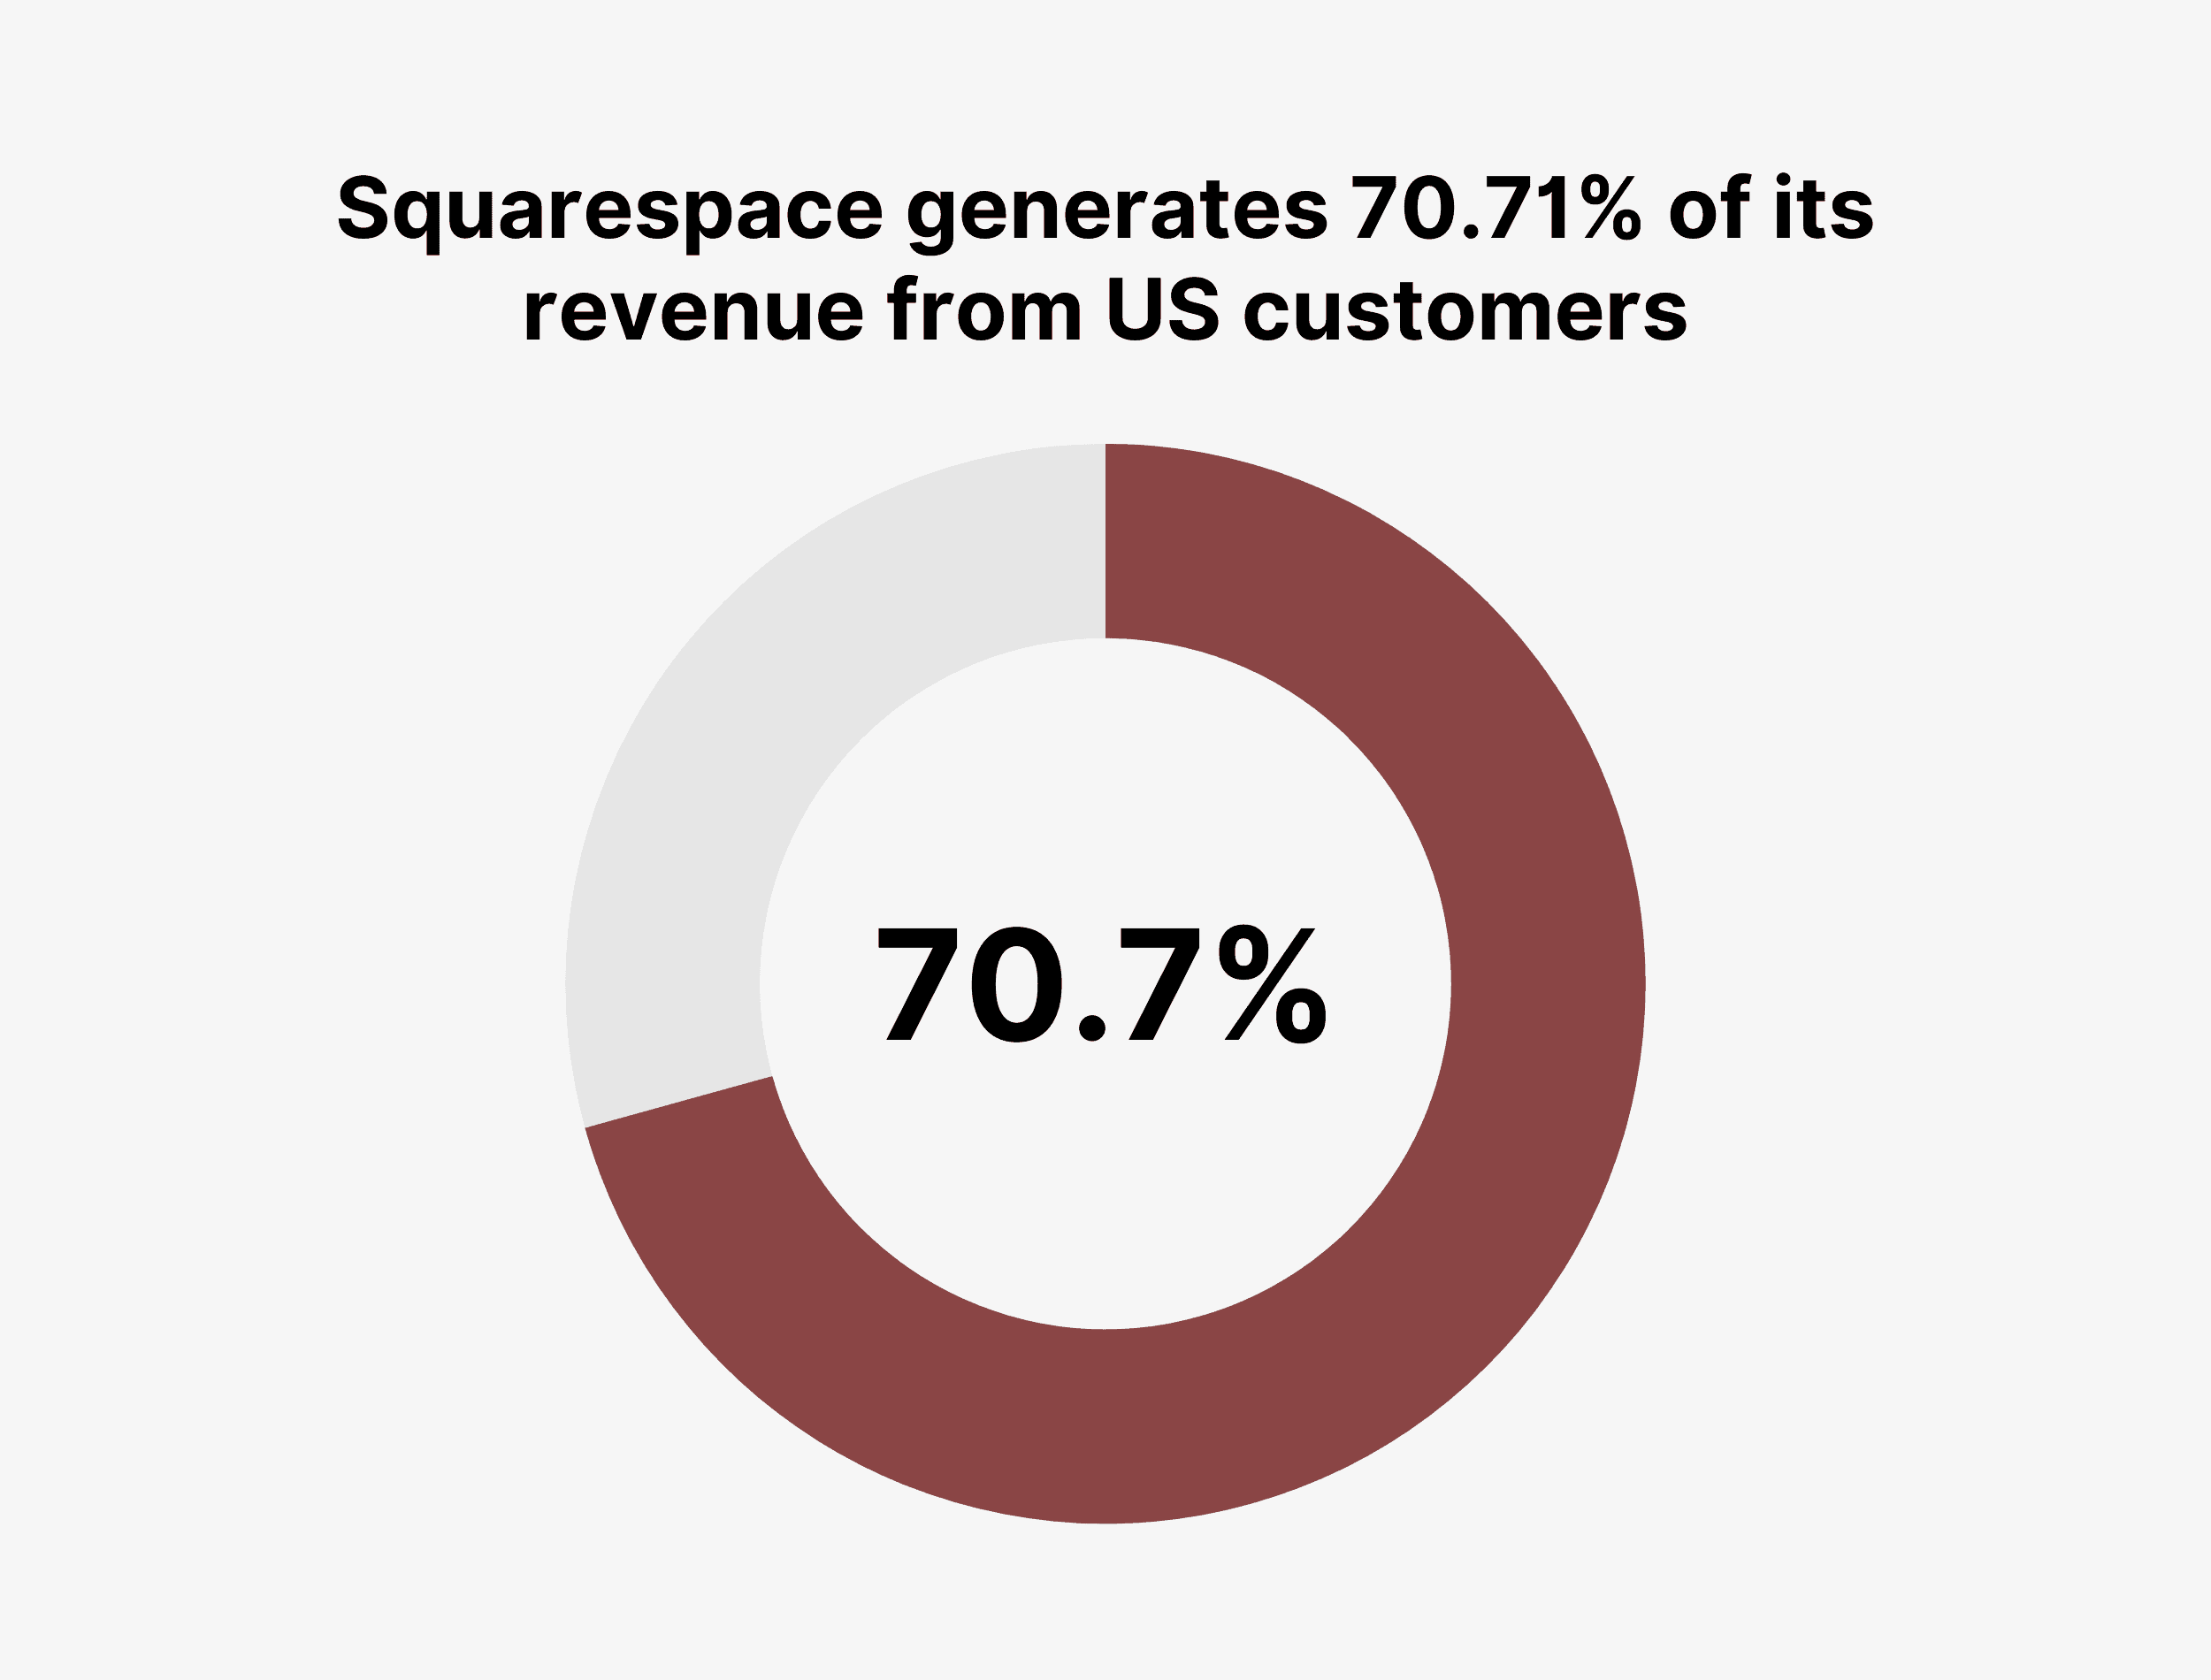 Squarespace generates 70.71% of its revenue from US customers